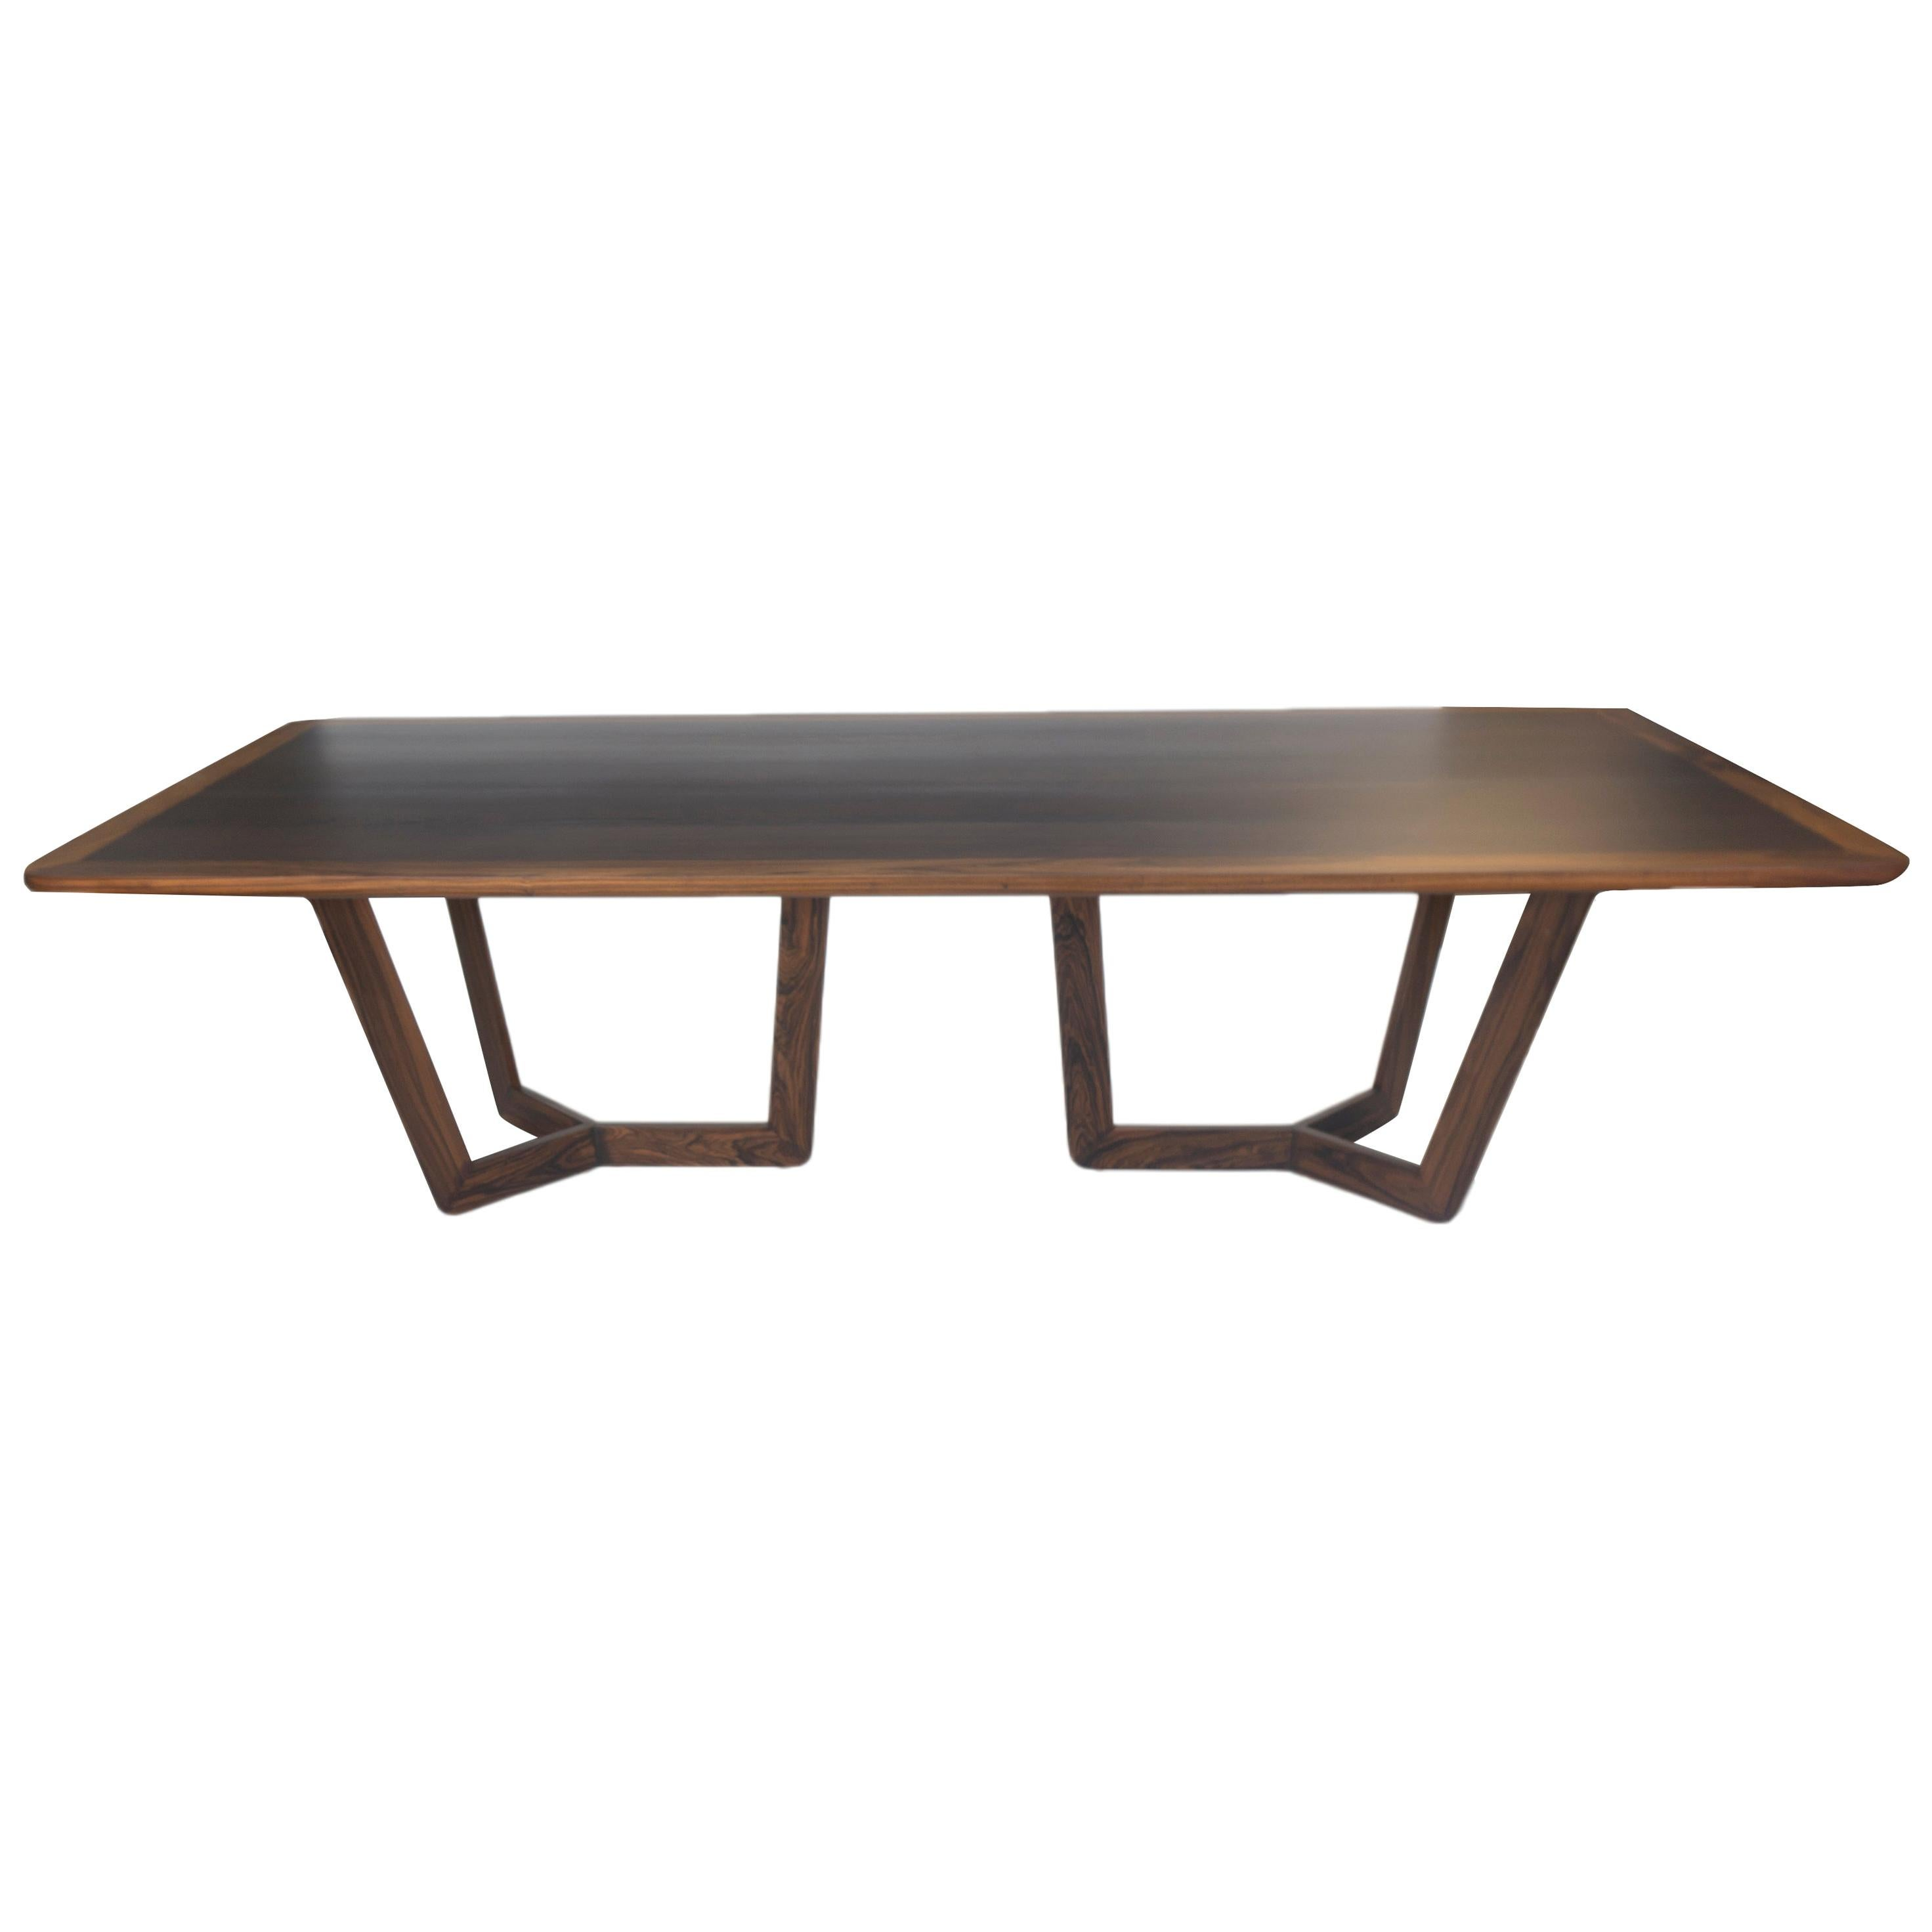 Modern Wooden Dining Table, Customizable